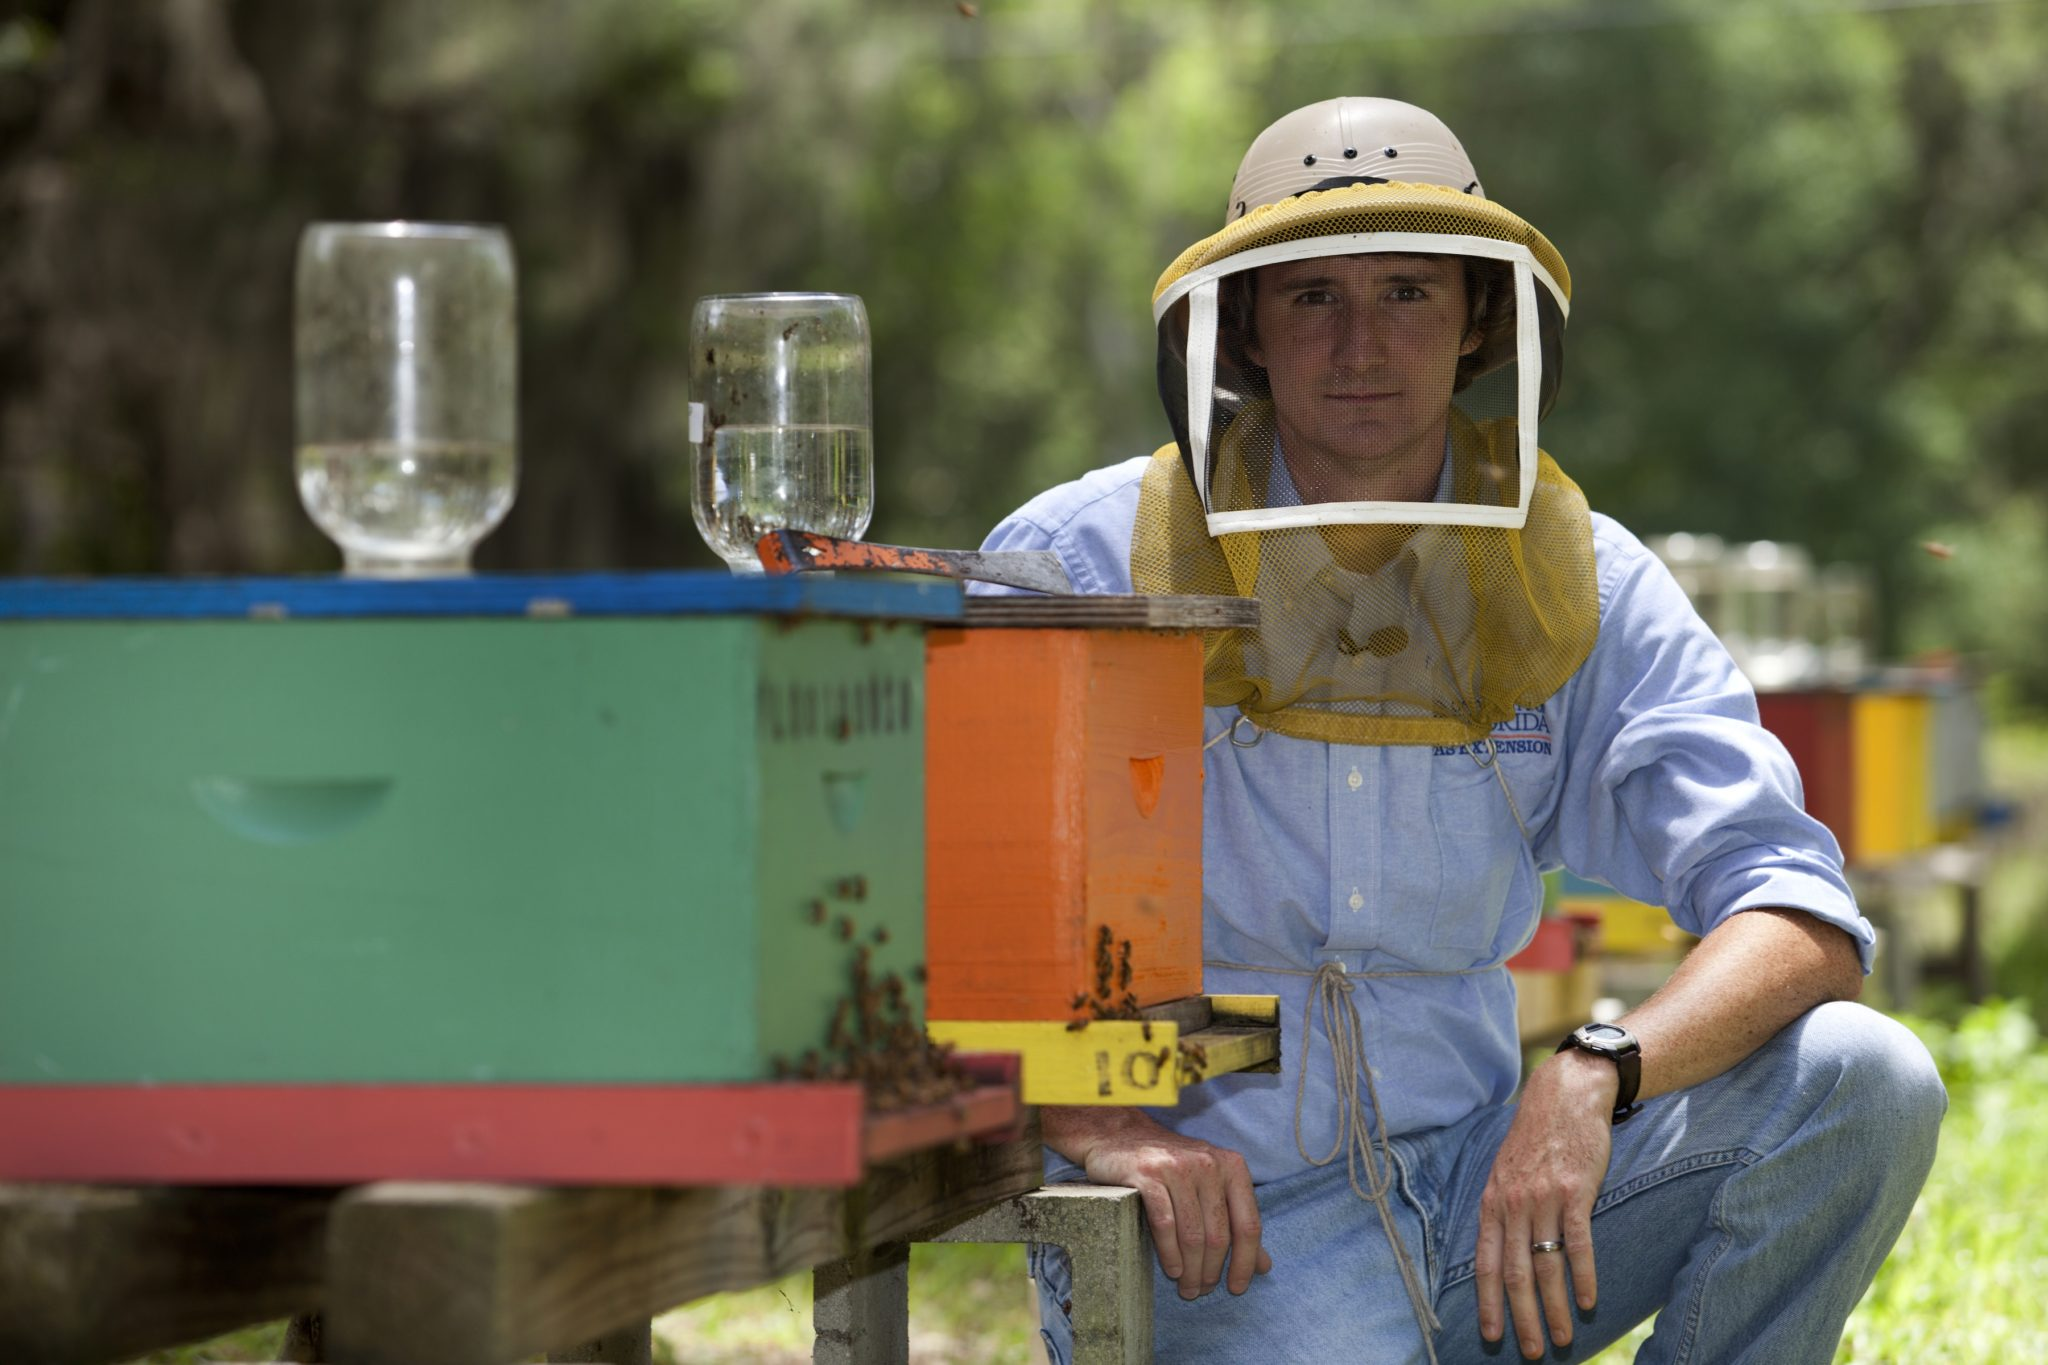 Honeybees, Floridians to Enjoy a 'Win-Win Situation' with Bee Research Lab